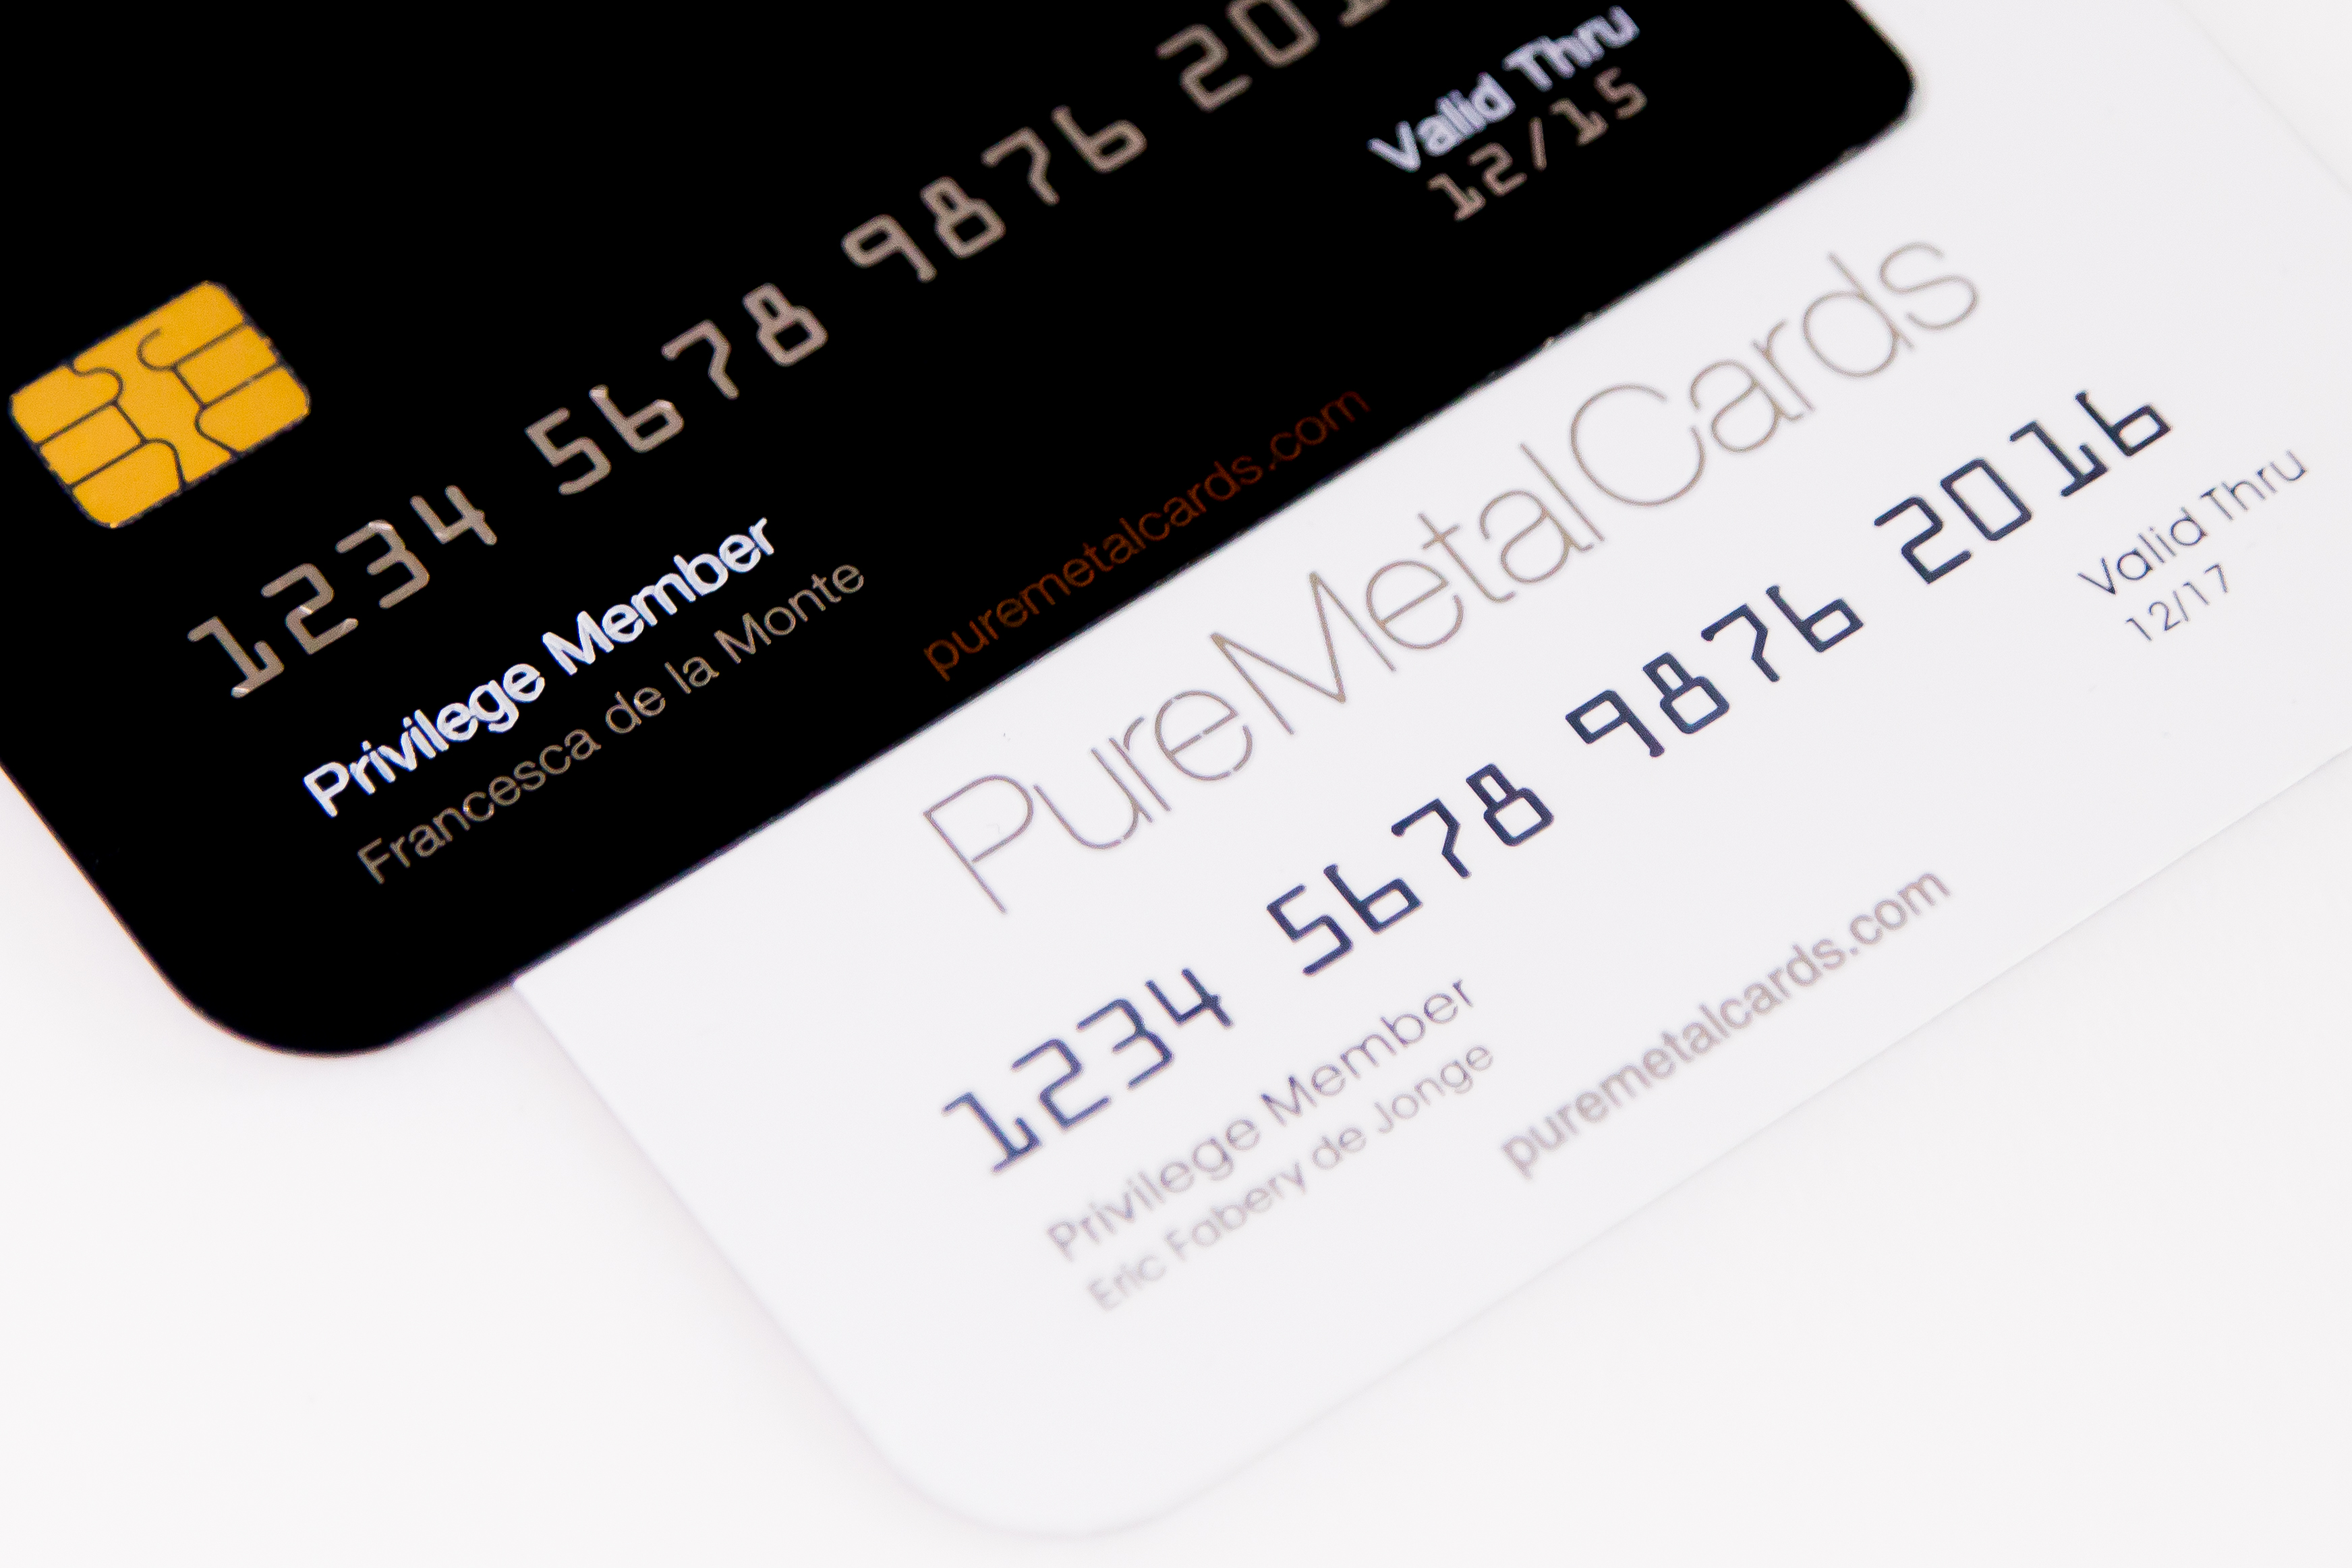 Pure Metal Cards - be unique